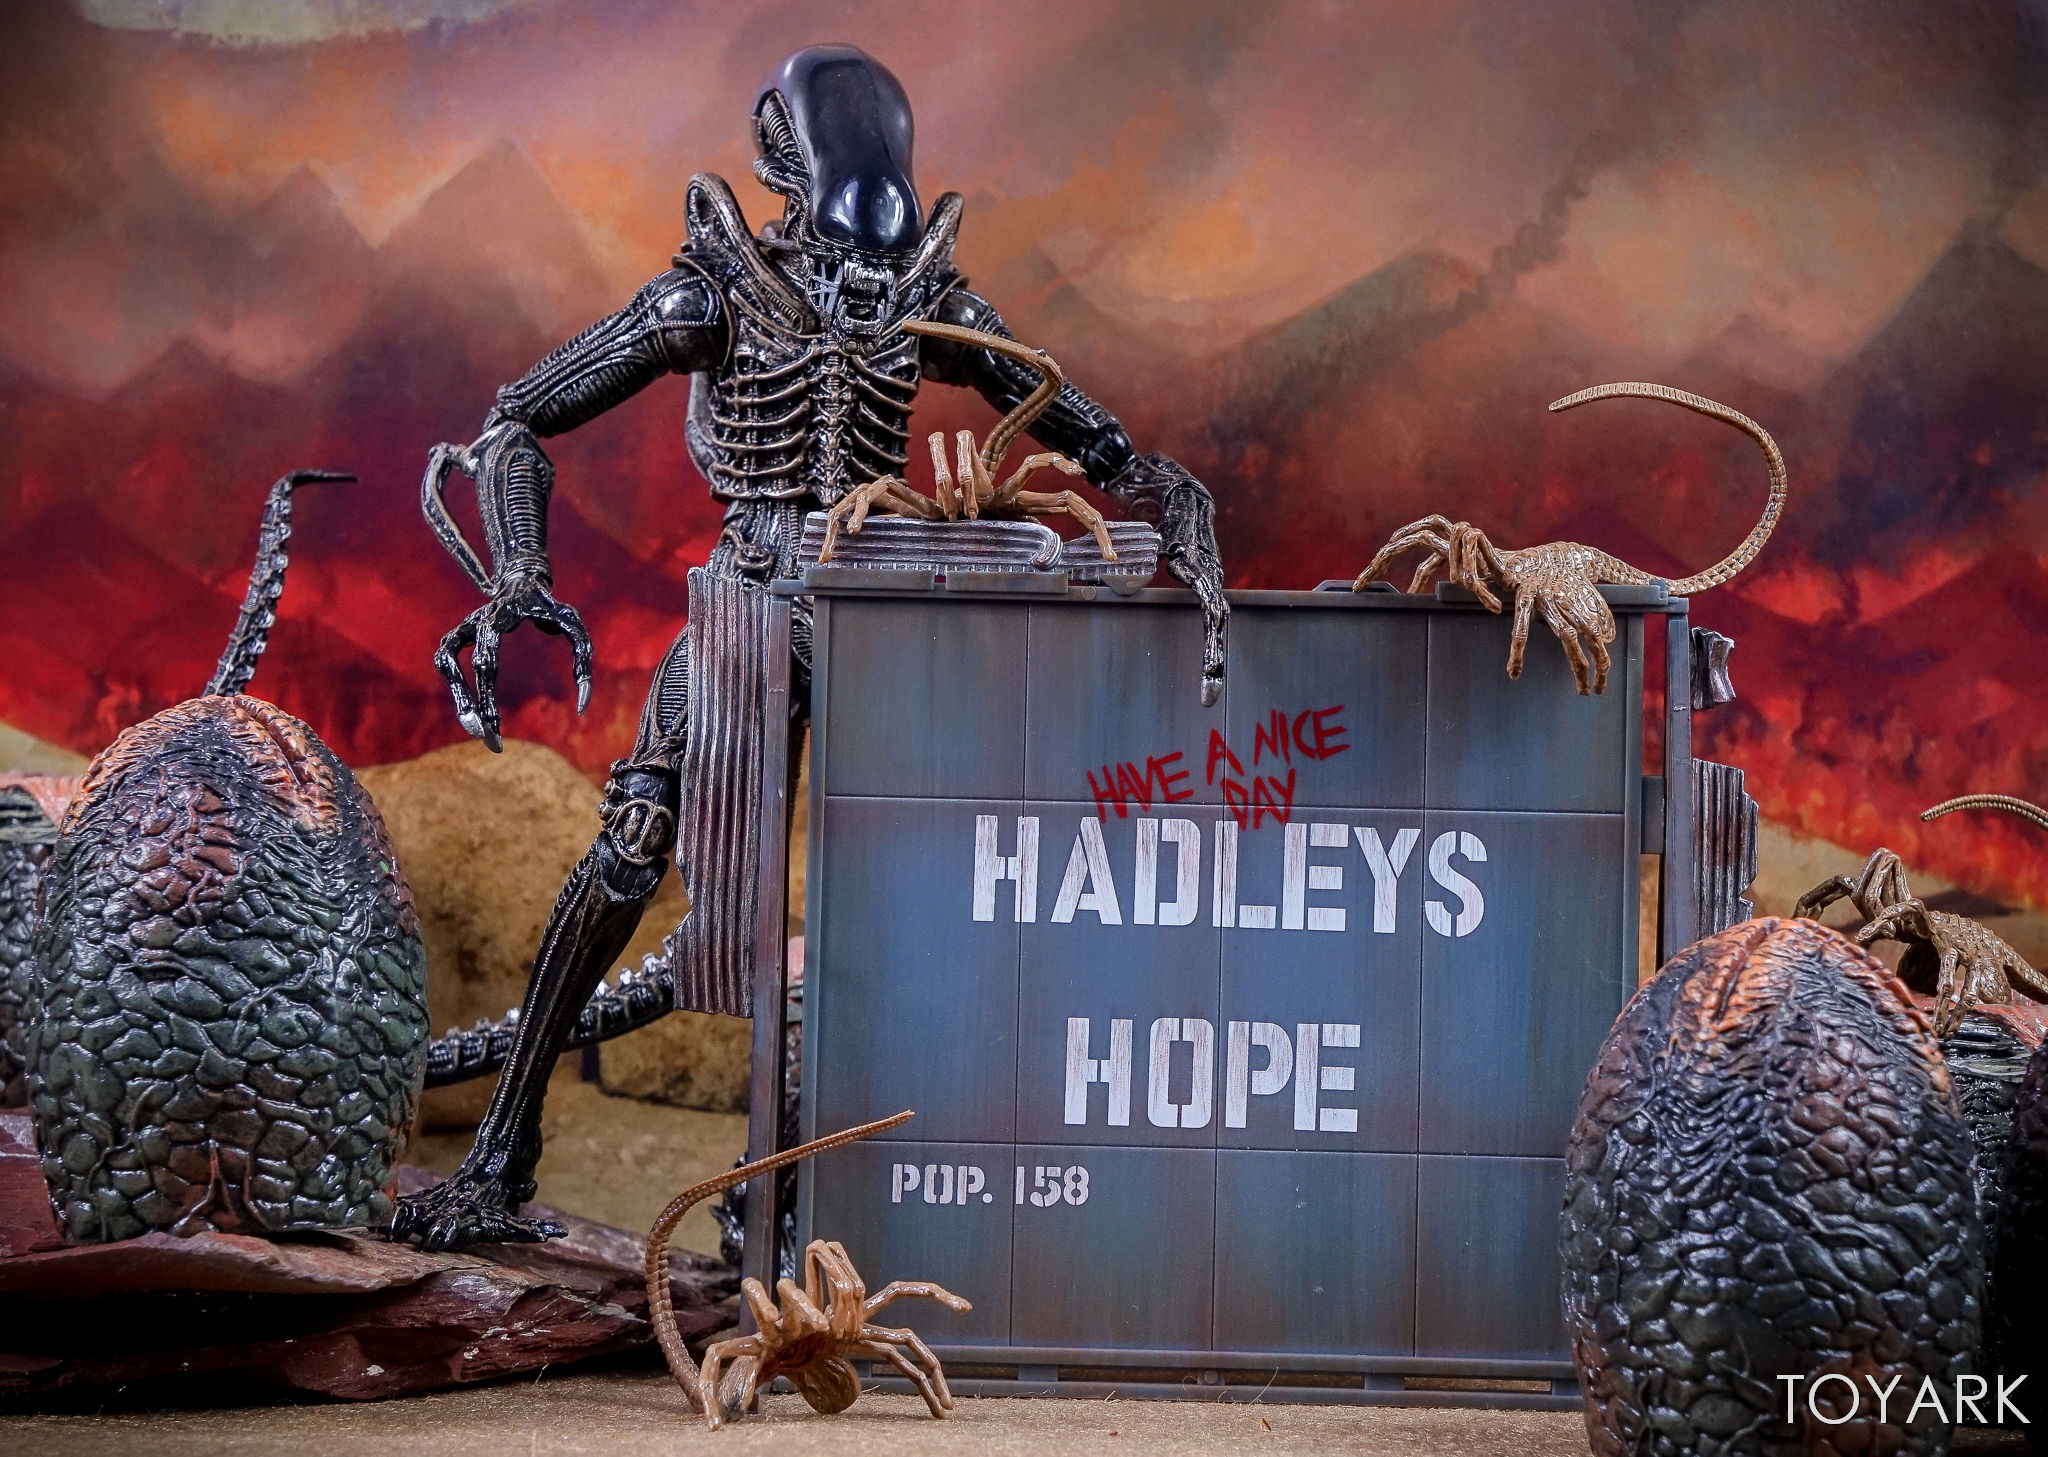 http://news.toyark.com/wp-content/uploads/sites/4/2017/09/Aliens-Hadleys-Hope-2-Pack-019.jpg